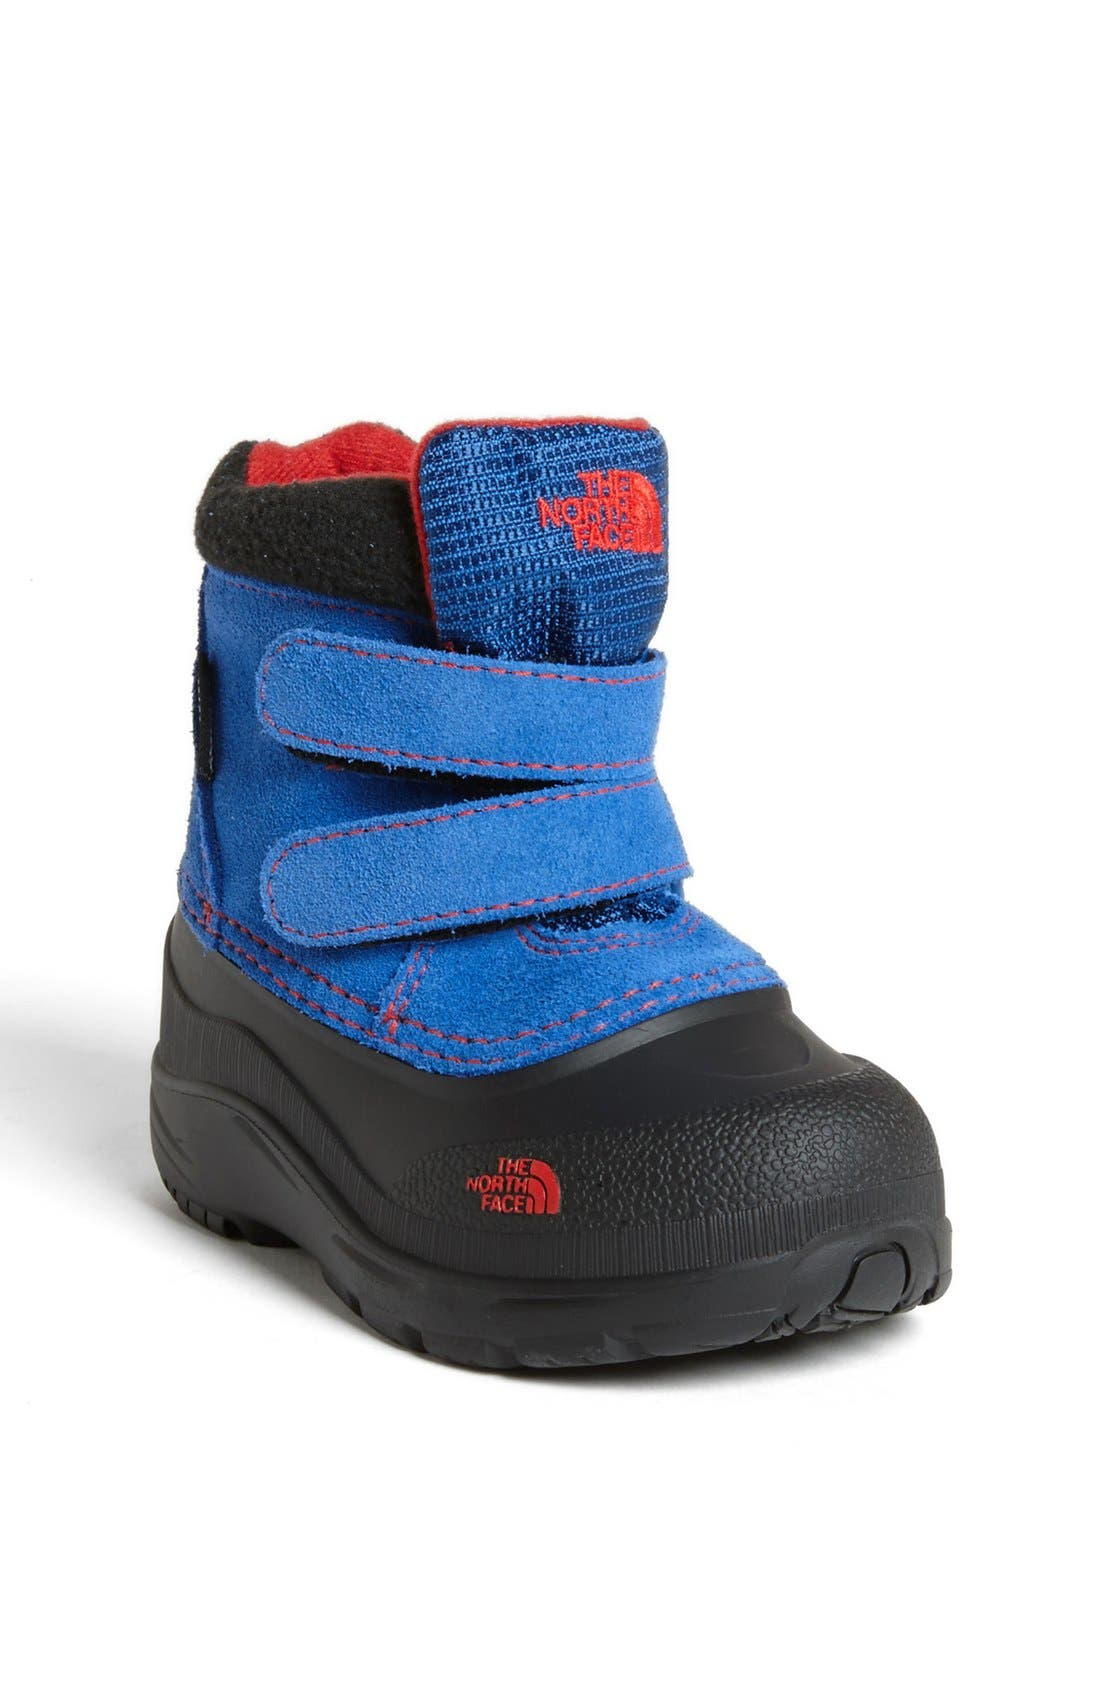 Alternate Image 1 Selected - The North Face 'Chilkat' Waterproof Snow Boot (Walker & Toddler)